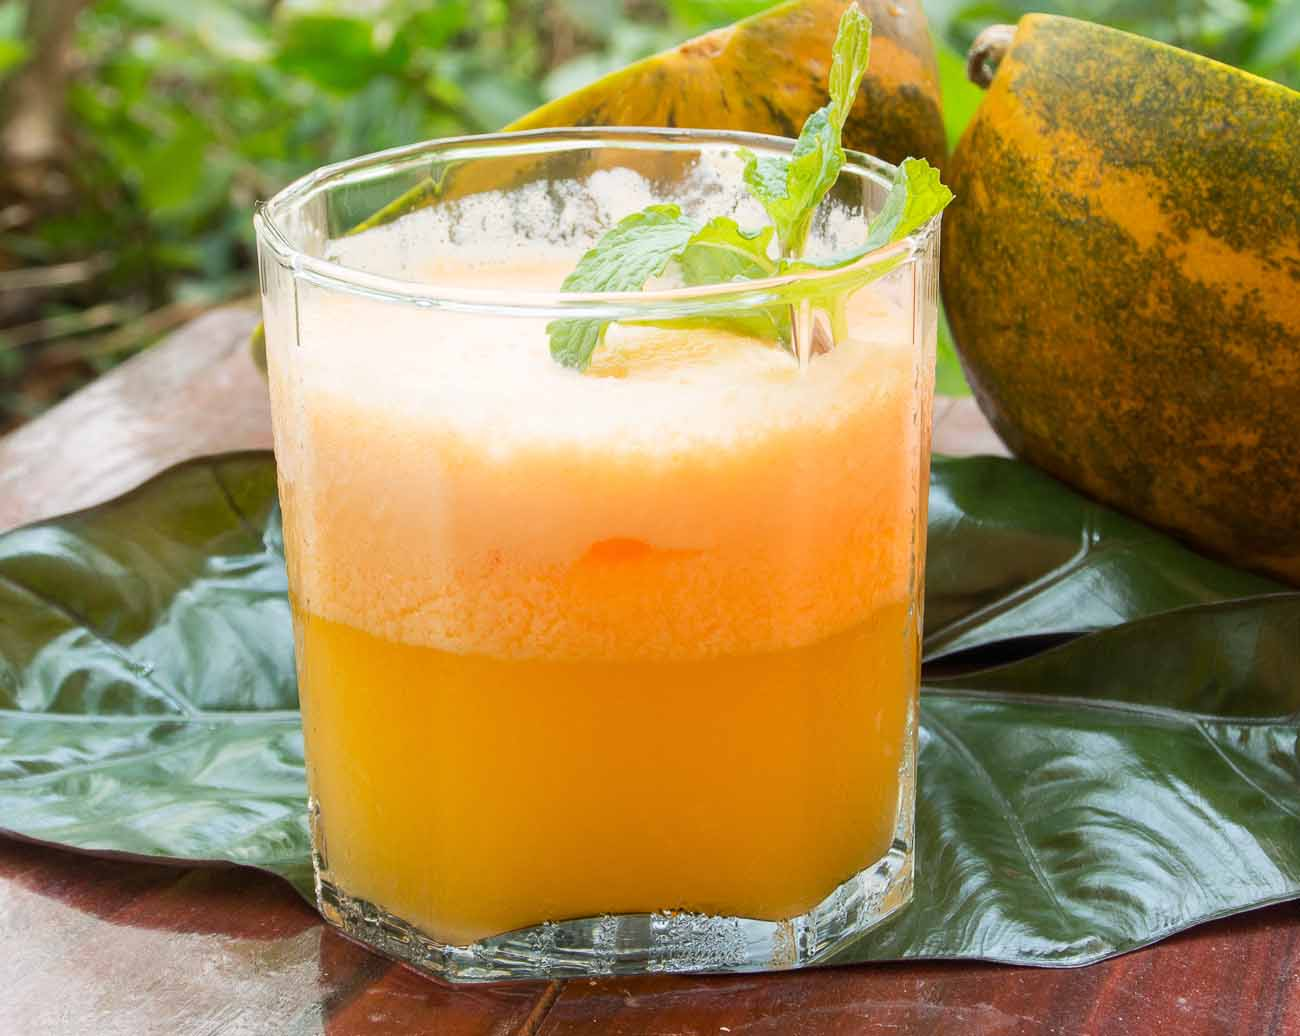 Cantaloupe Juice Recipe : 10 min healthy cantaloupe juice / musk melon juice recipe.